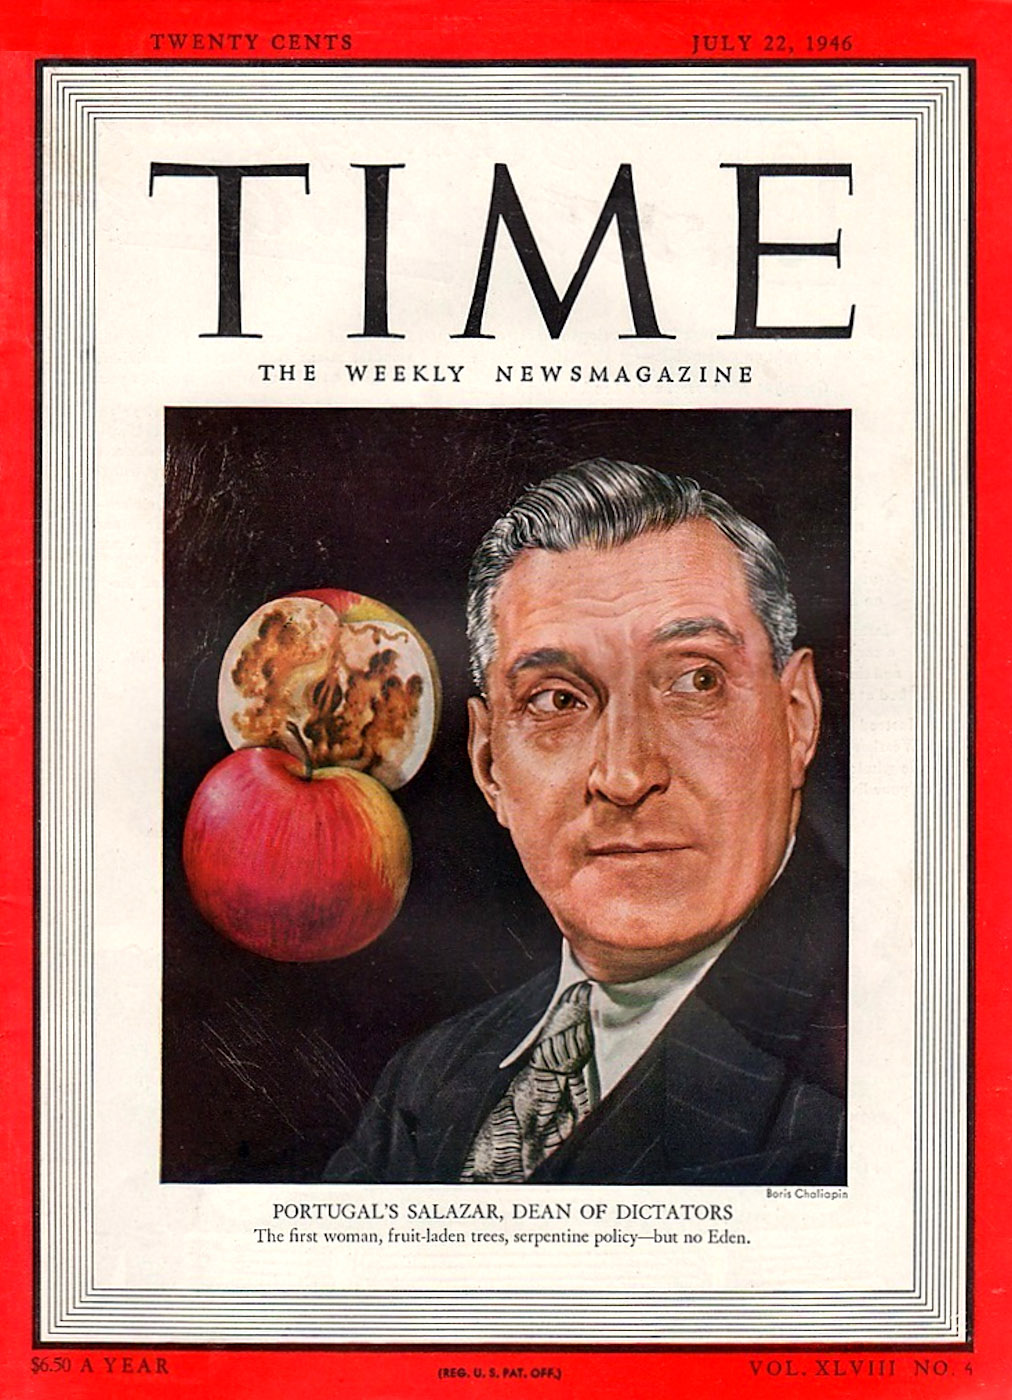 1946 - Salazar - cover of Time Magazine, July 22, 1946 - capa da revista Time